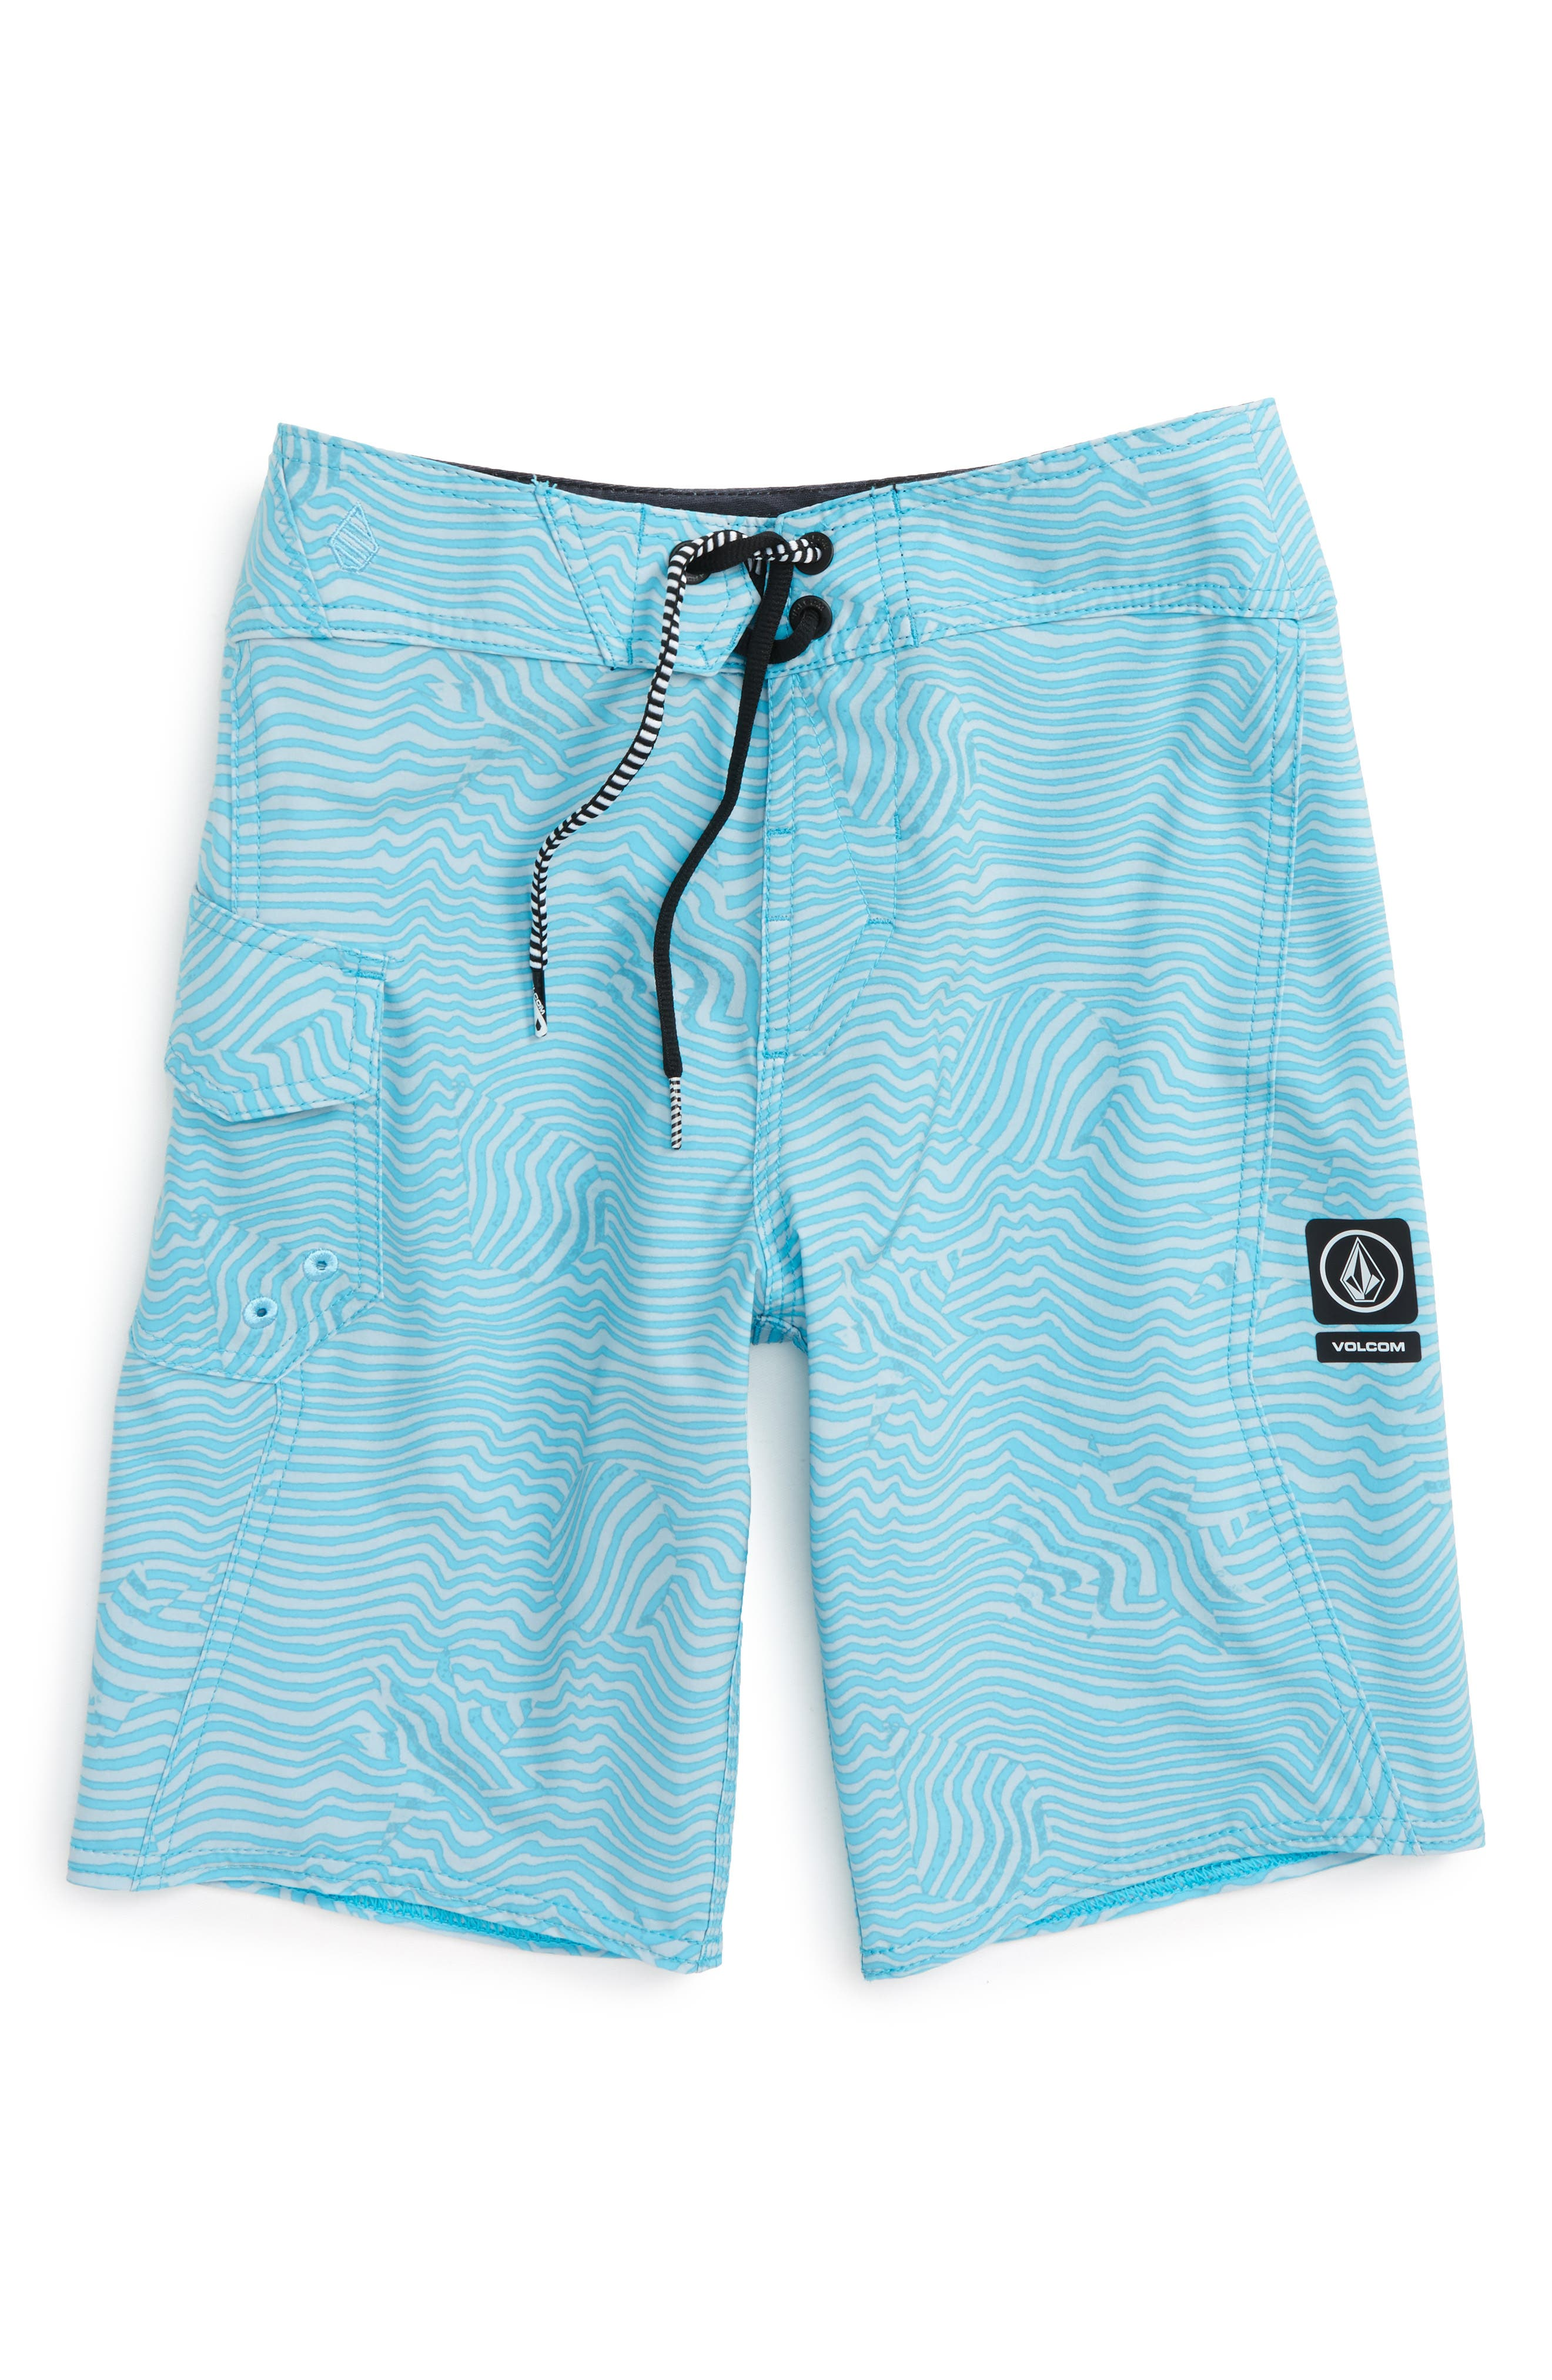 Magnetic Stone Board Shorts,                         Main,                         color, 457